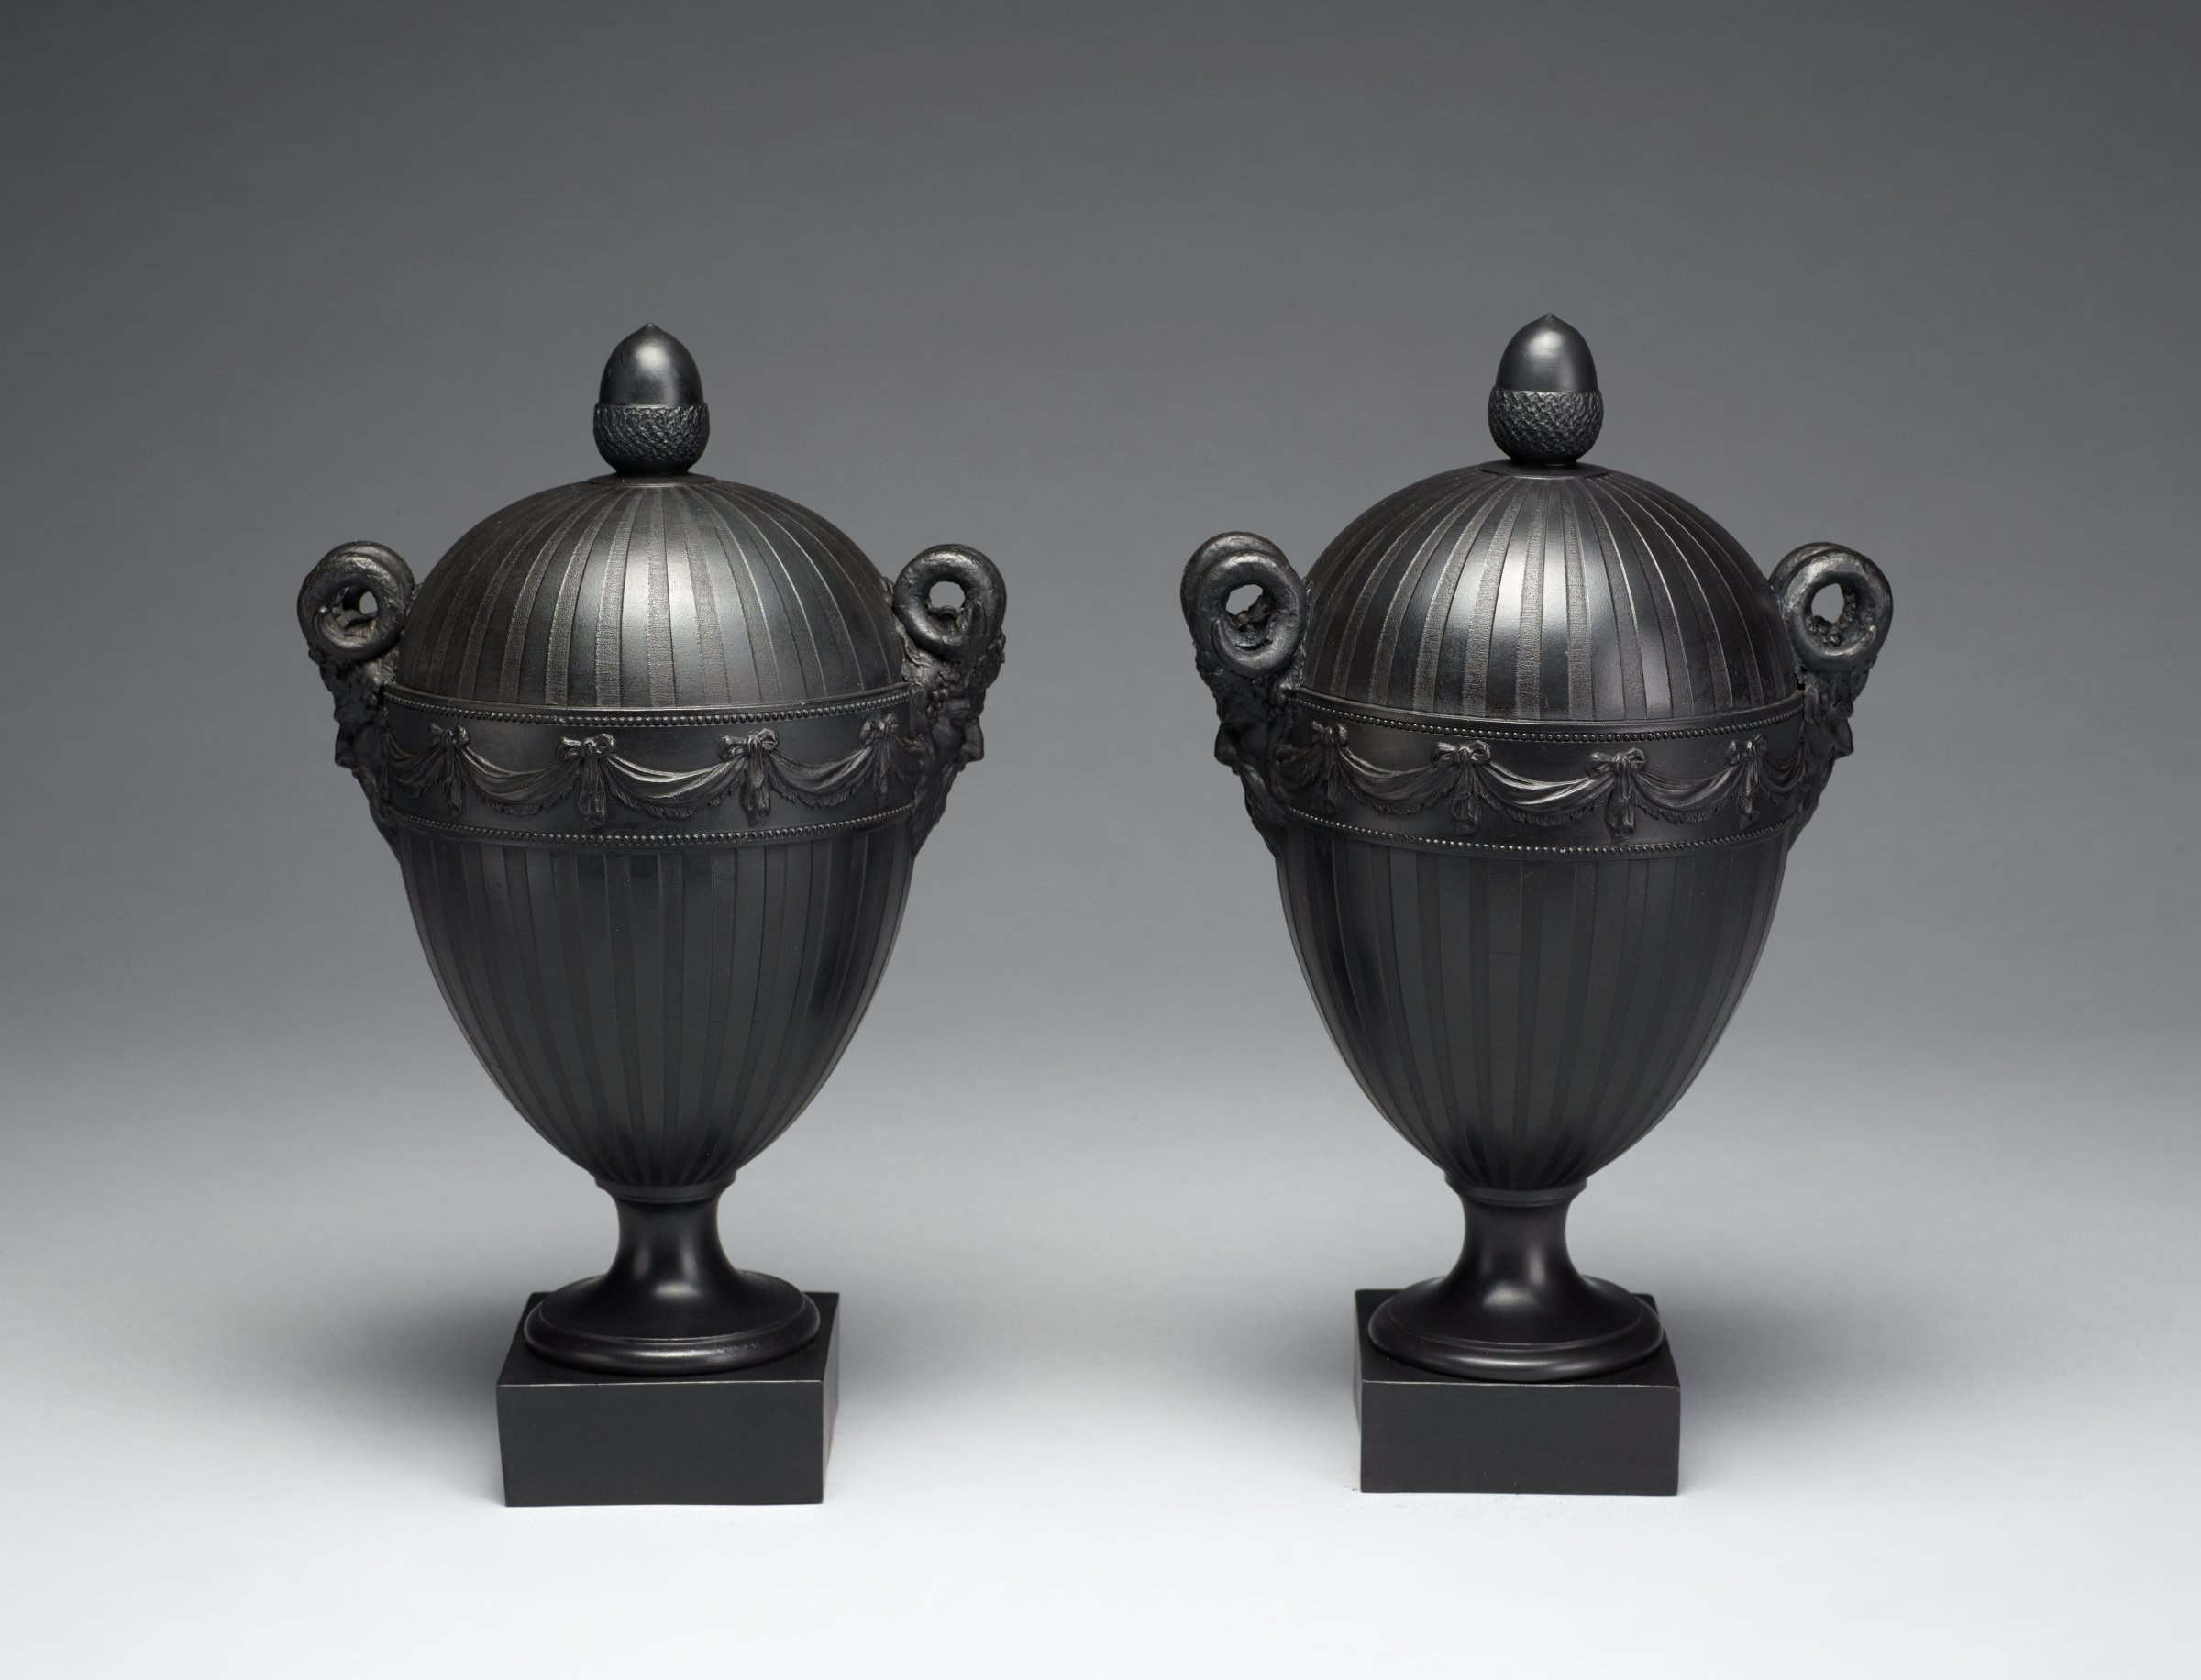 Pair of purely decorative vases of black basalt, each of urn shape and resting on small round foot mounted on a small square plinth, the body engine turned in a vertical stripe pattern and with swags around the shoulder, the permanently attached cover domed and with an acorn finial, with two horned mask handles.